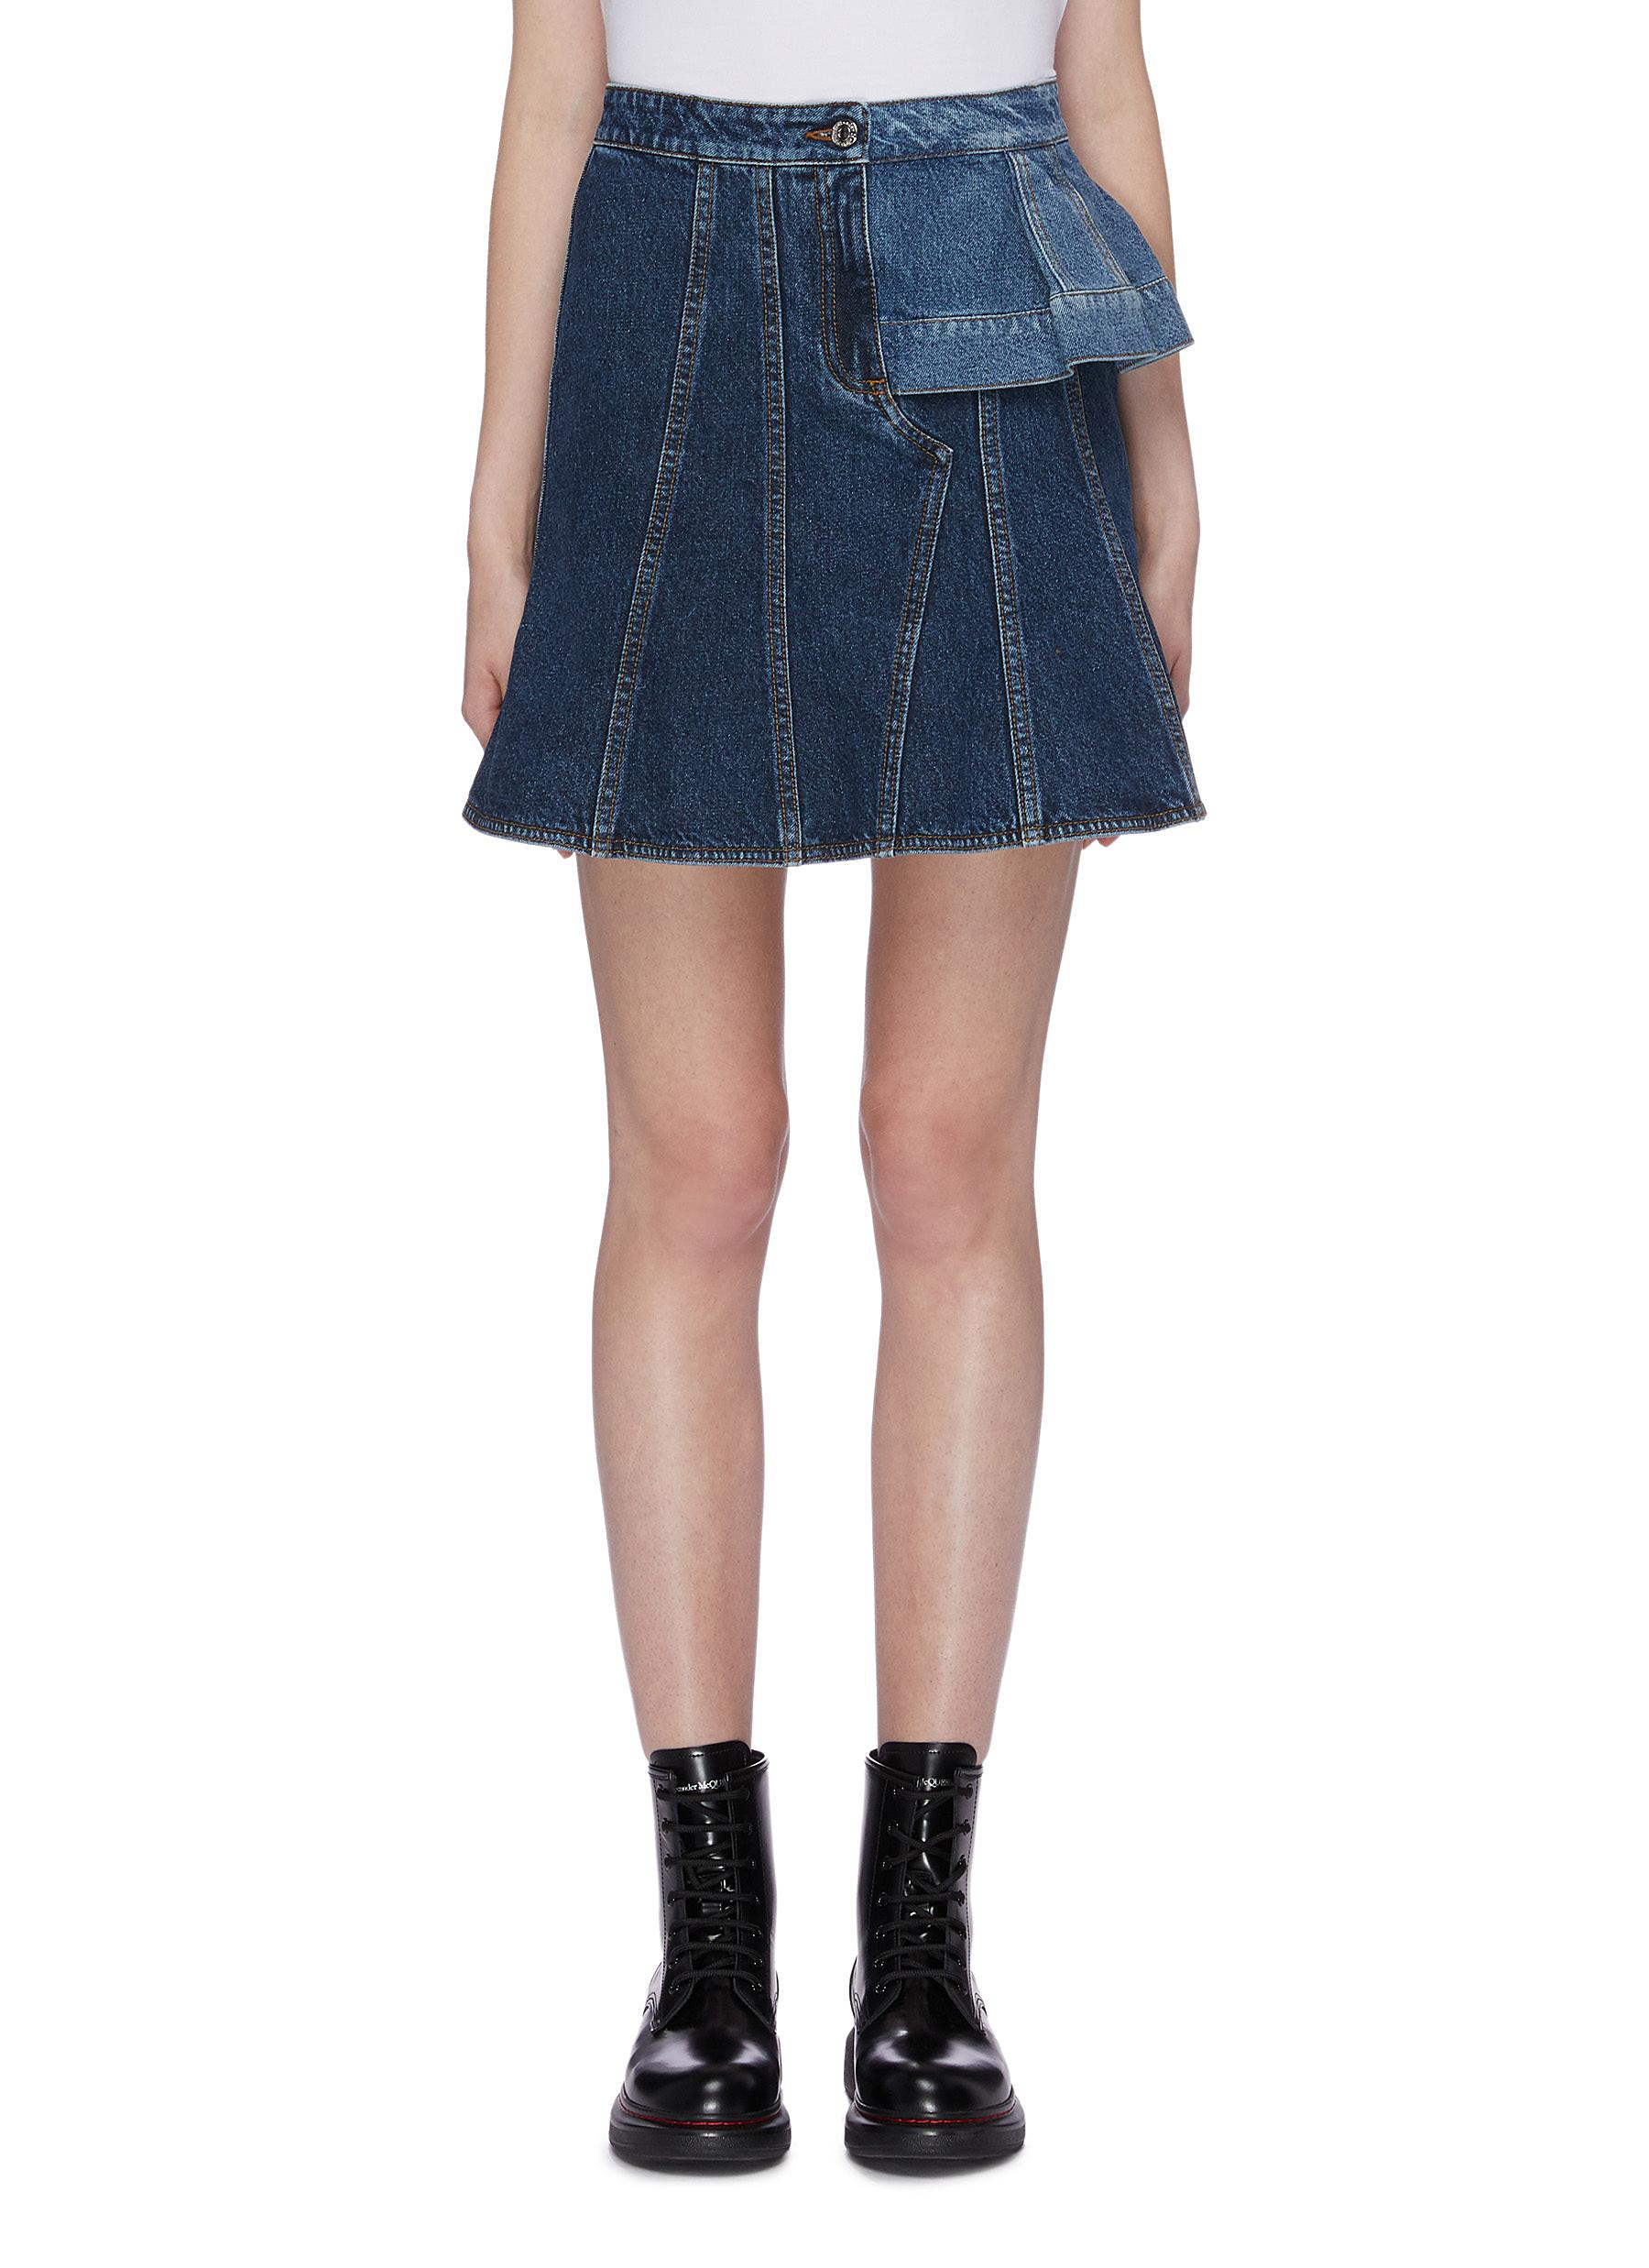 Asymmetric layered panel flared denim skirt by Alexander Mcqueen